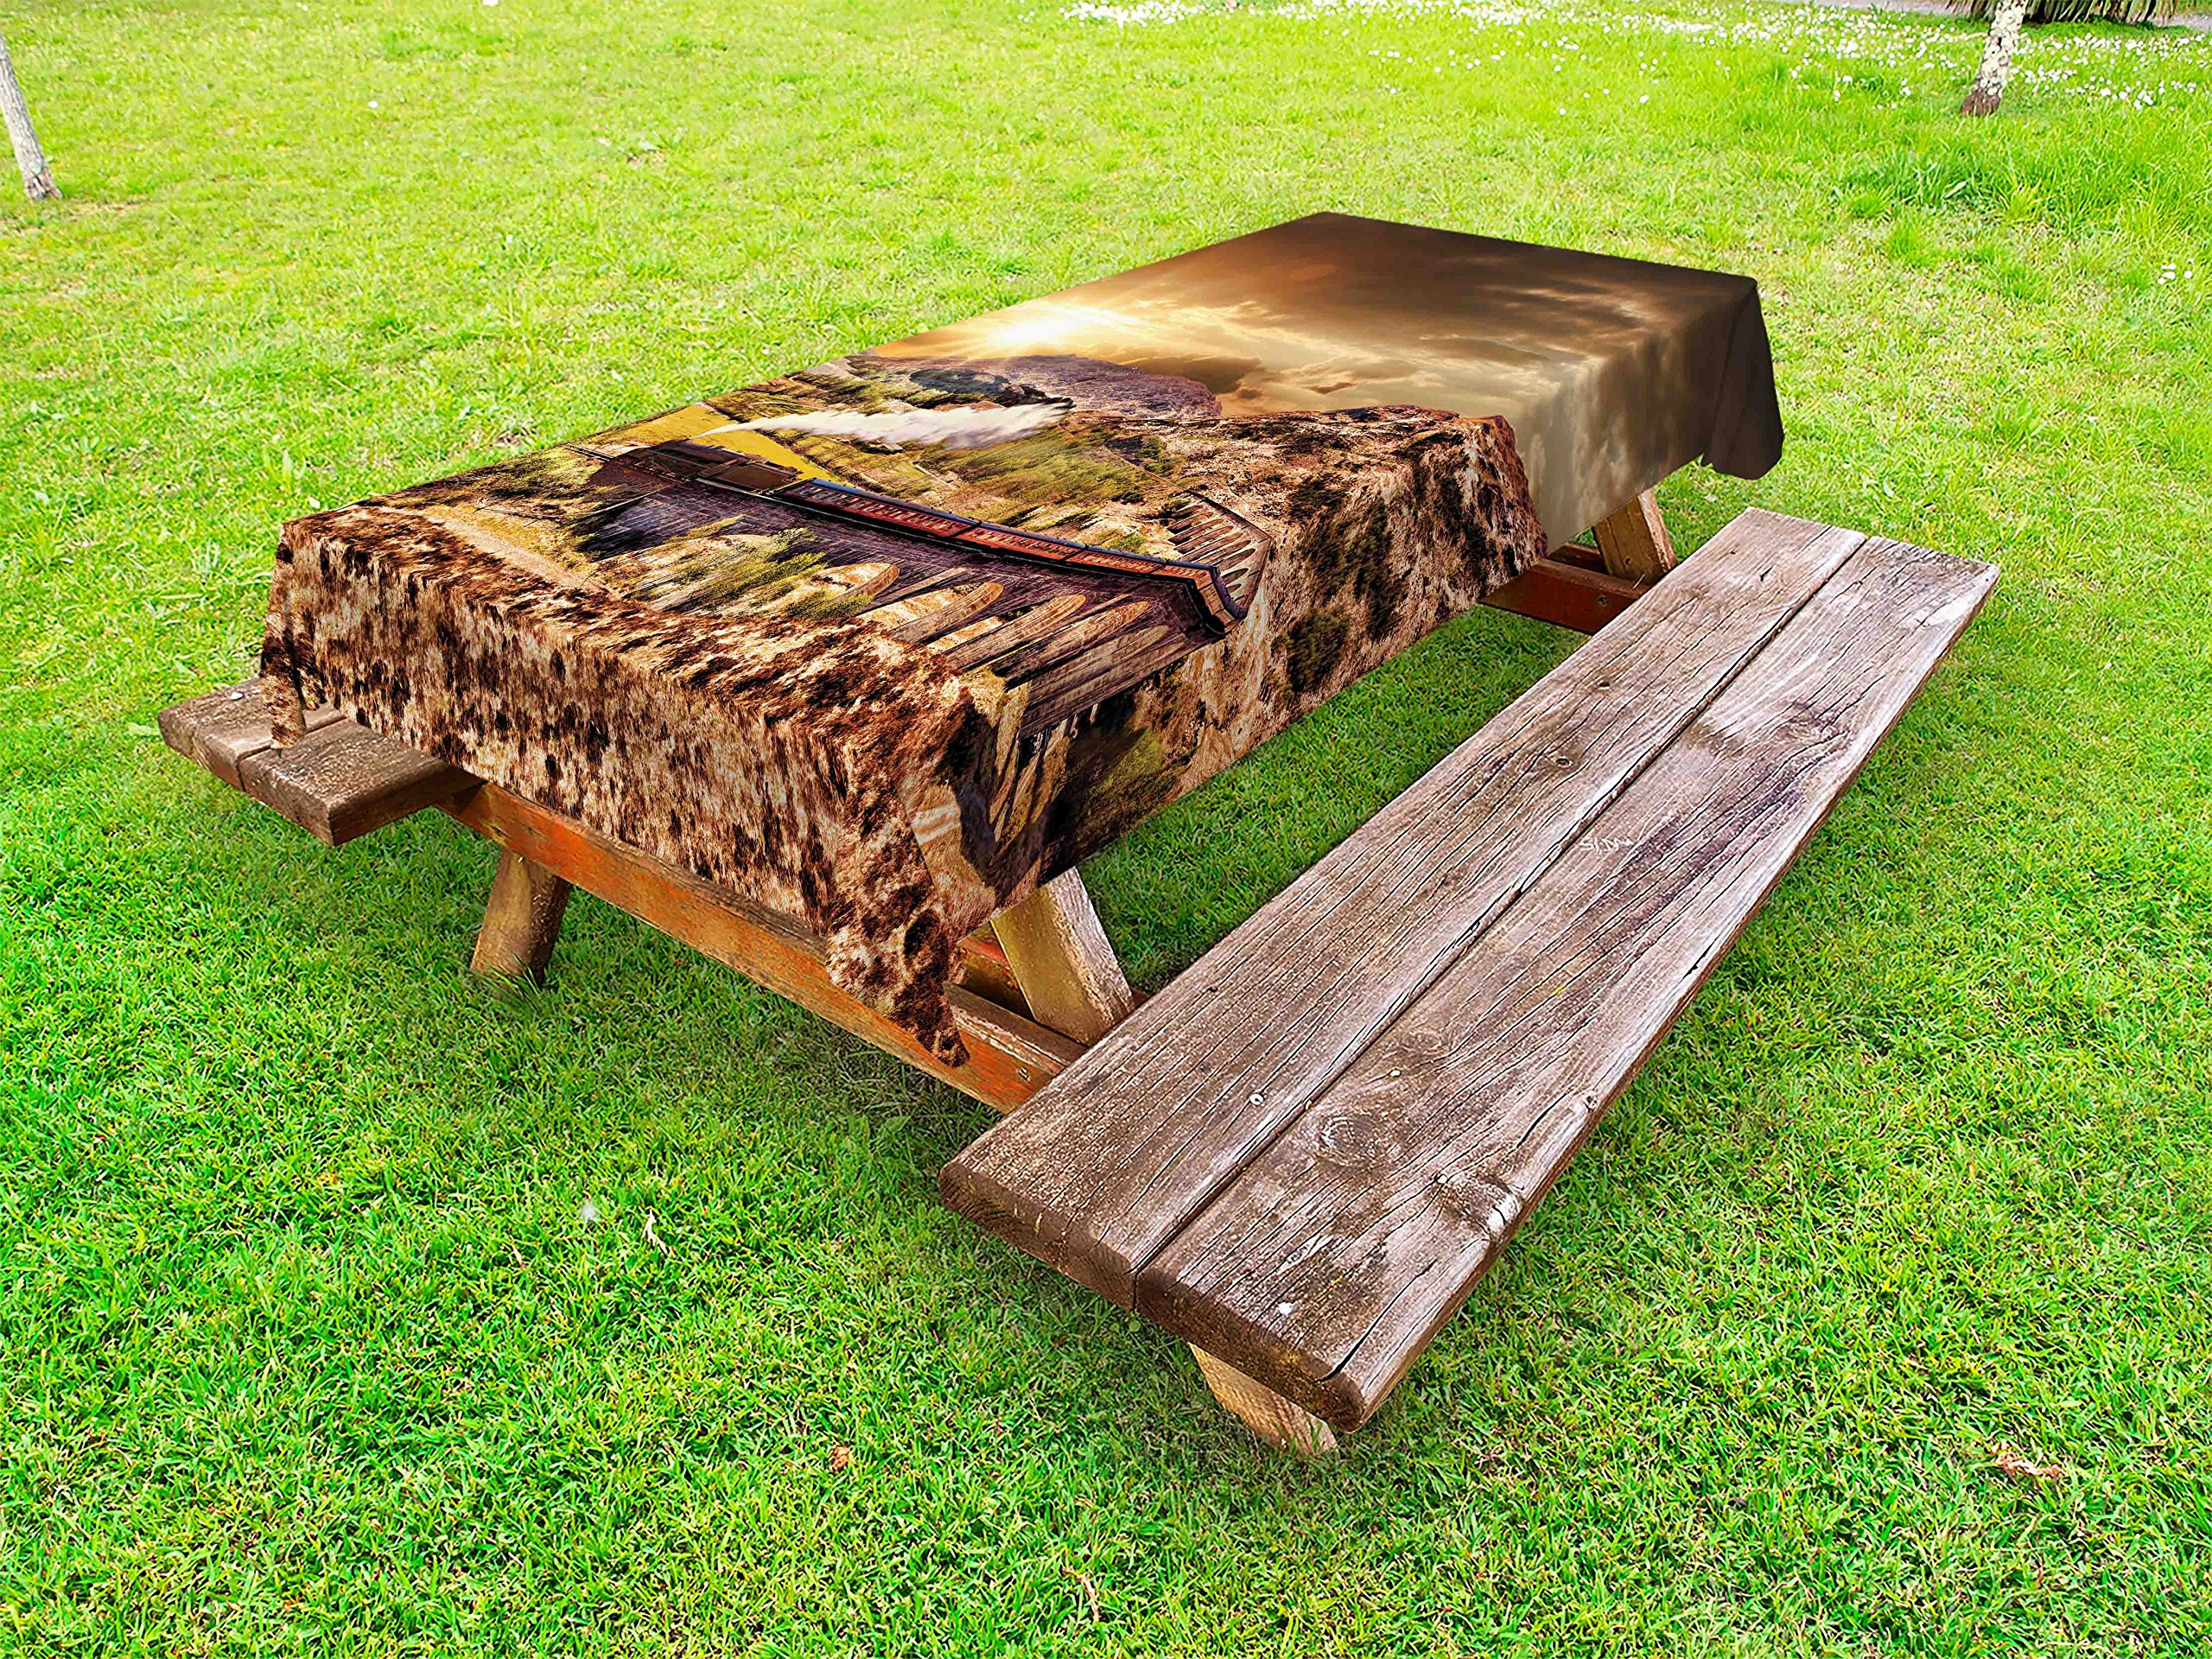 Ambesonne Wizard Outdoor Tablecloth, Wizard School Express Famous Train Landscape Glenfinnan Railway Viaduct Scotland Sunset, Decorative Washable Picnic Table Cloth, 58 X 120 inches, Brown